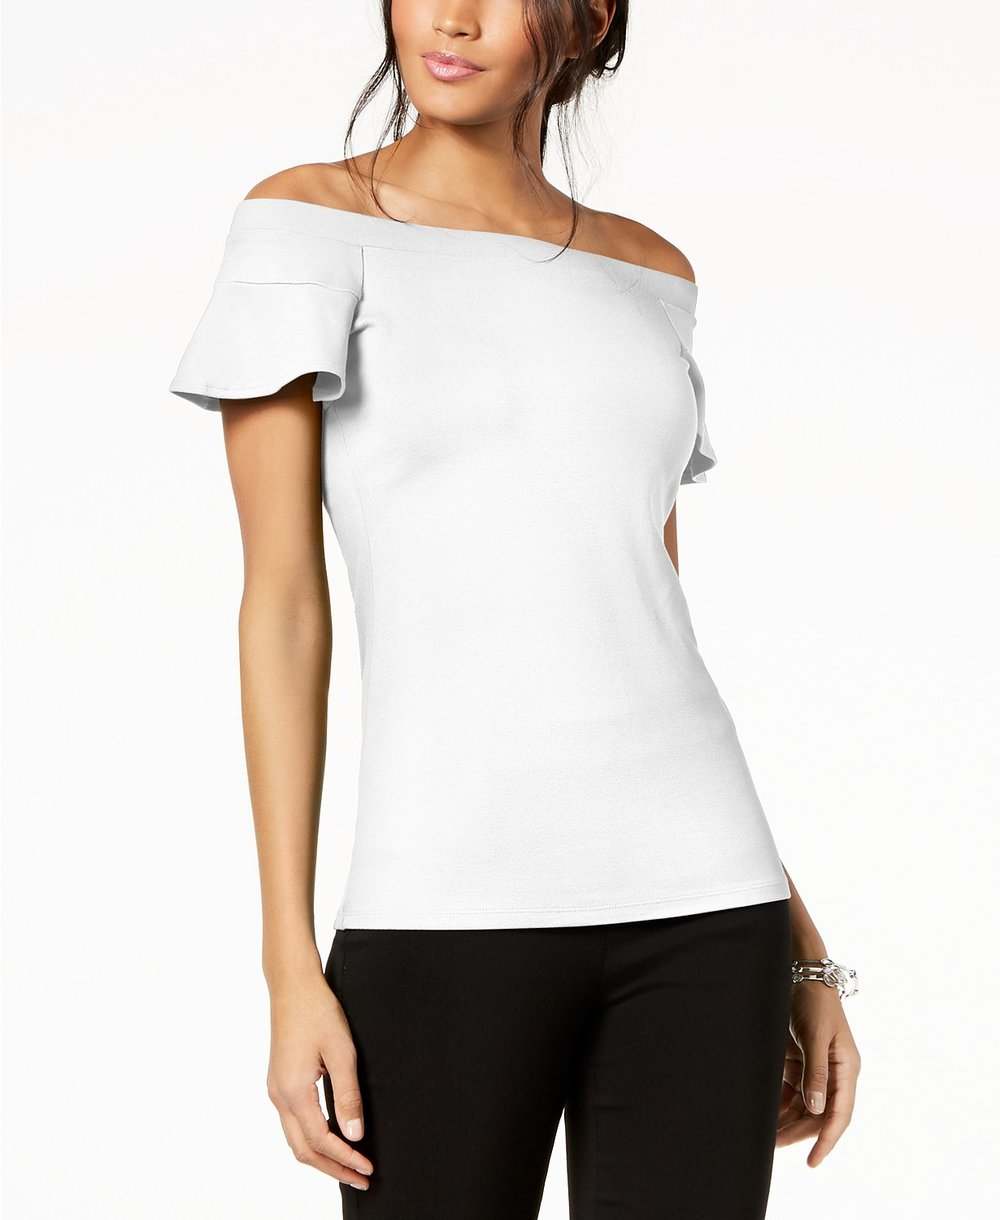 Macy's Off the Shoulder Top  $45